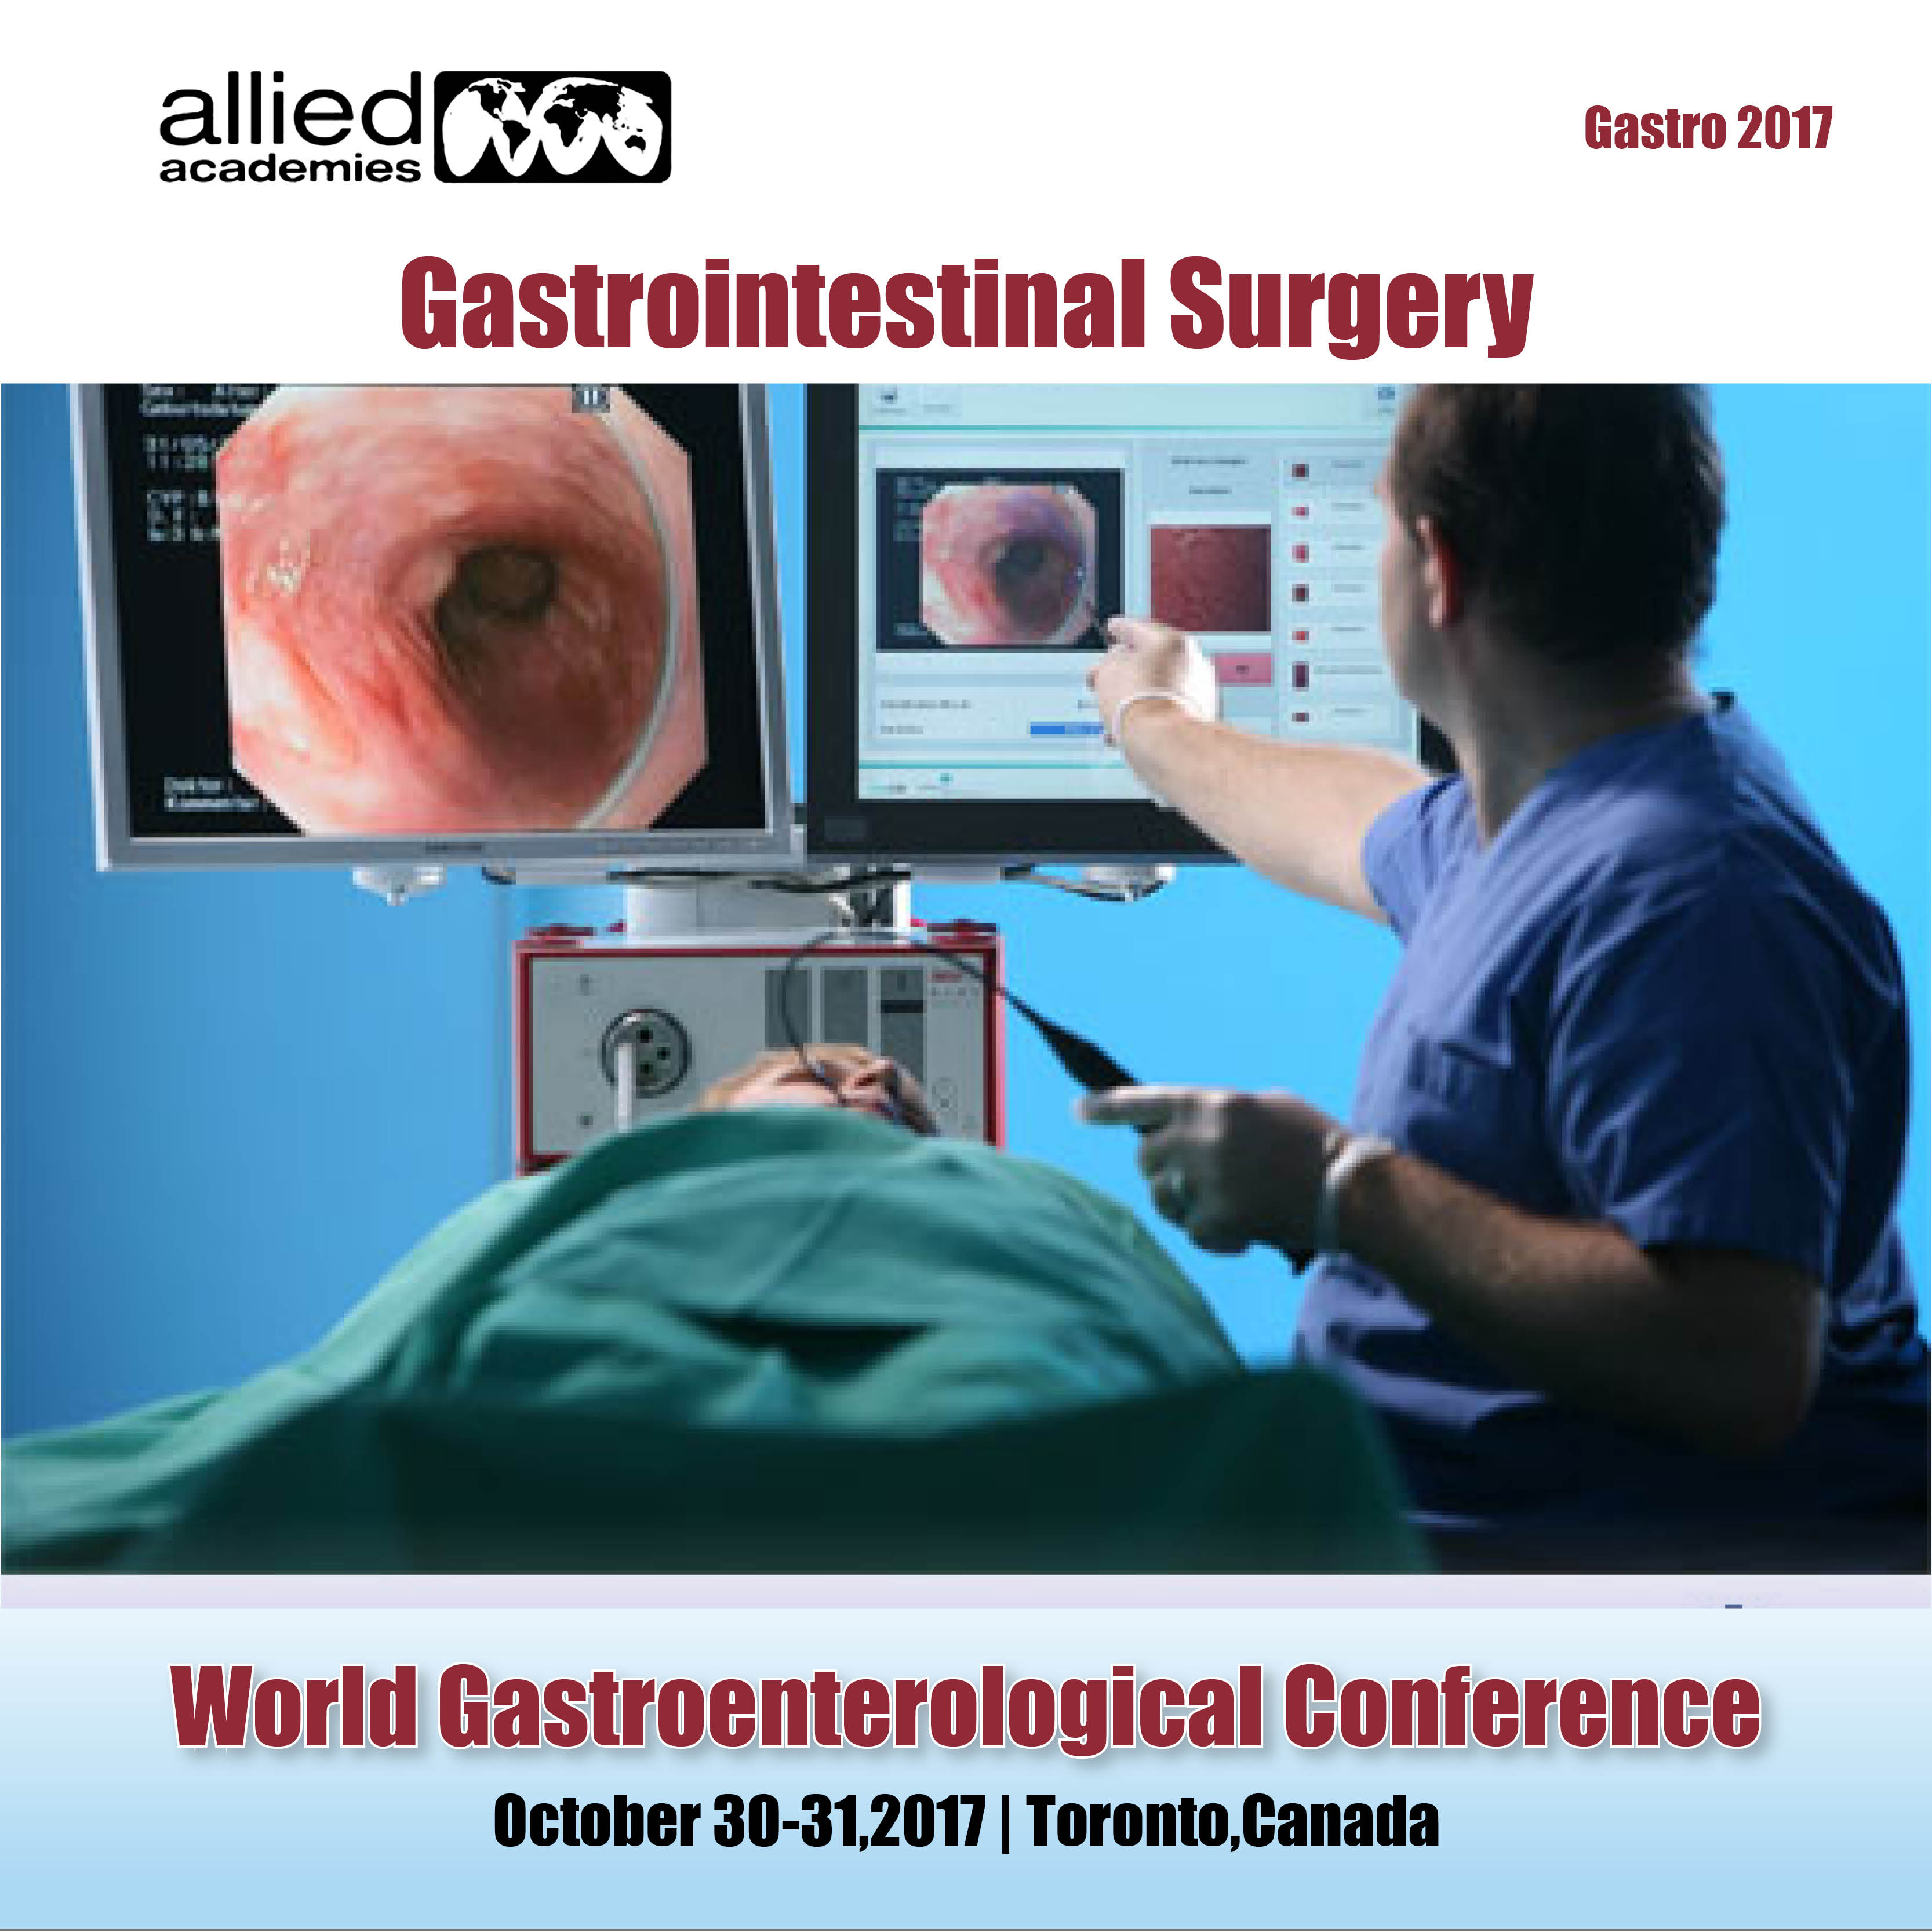 Gastrointestinal Surgery (Minimally Invasive Gastrointestinal Surgery) Photo